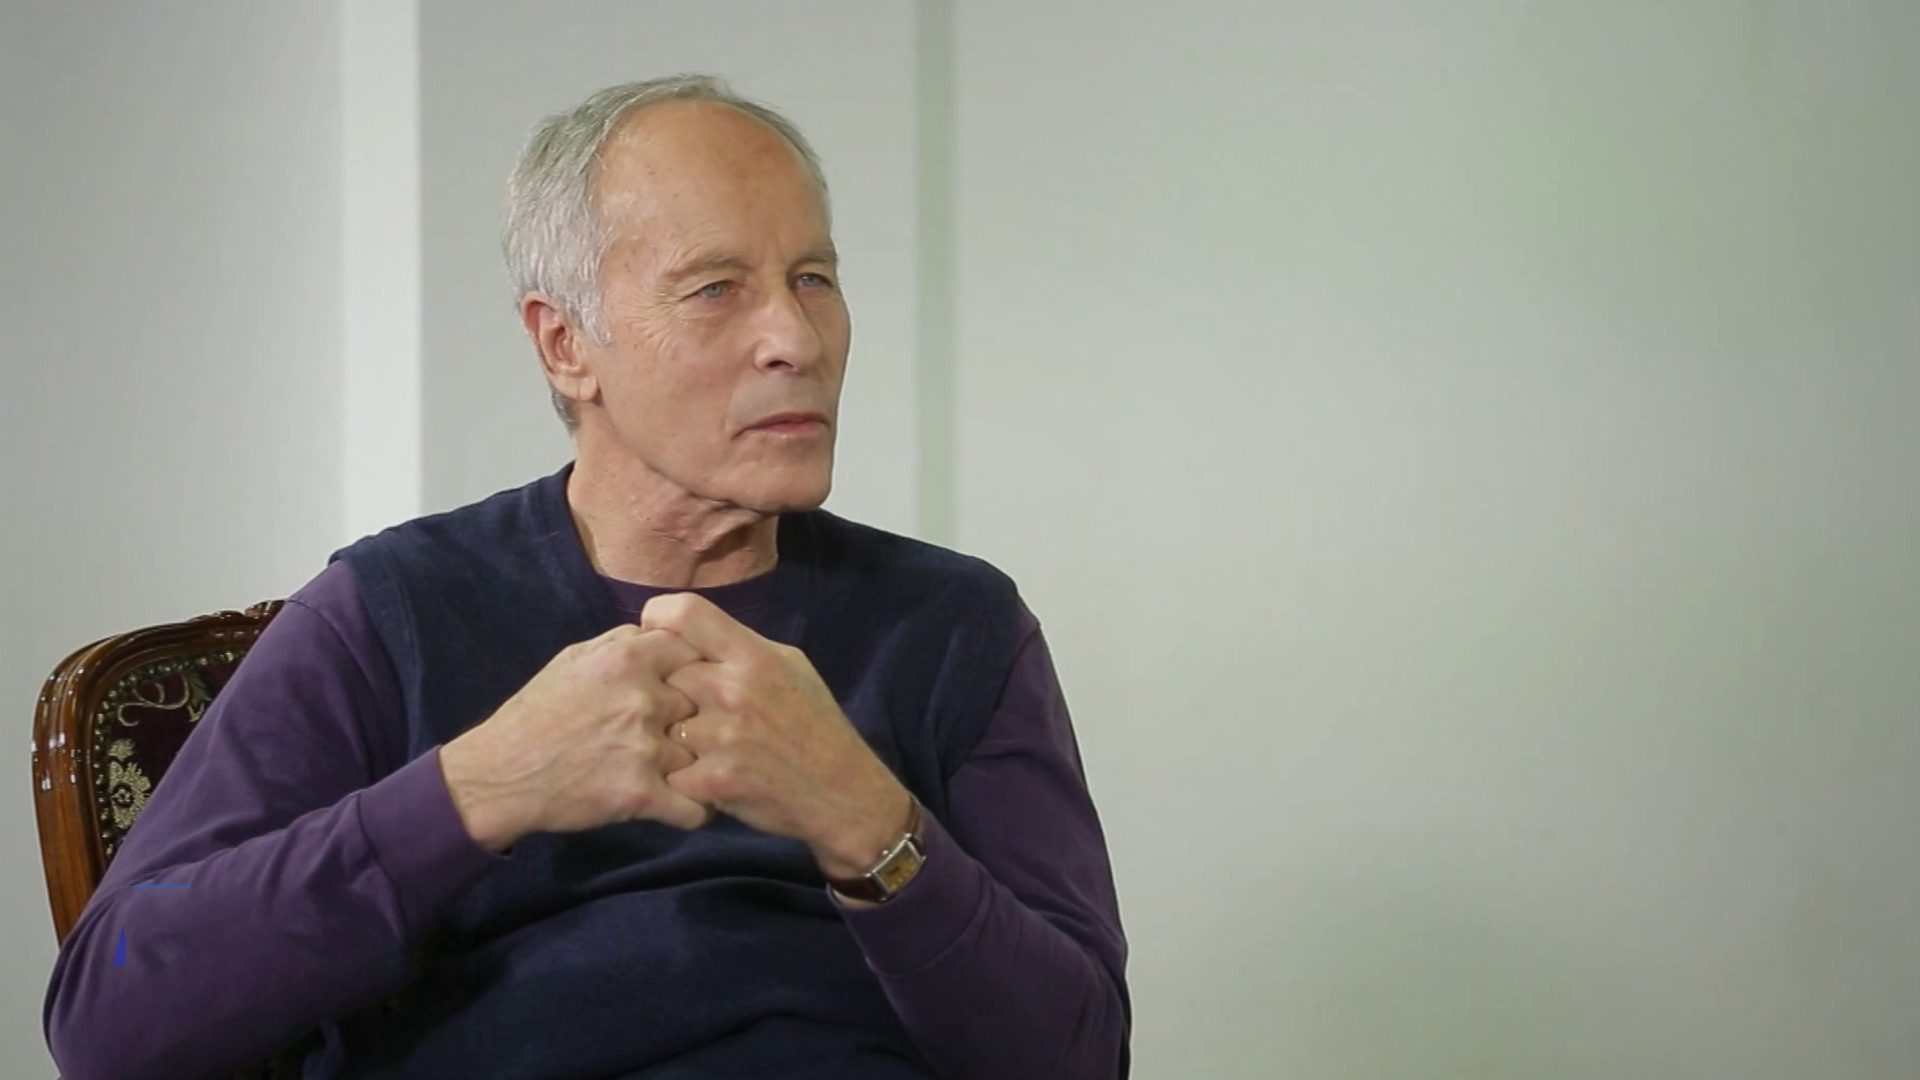 [The INNERview] The Life of a Writer [Novelist Richard Ford]